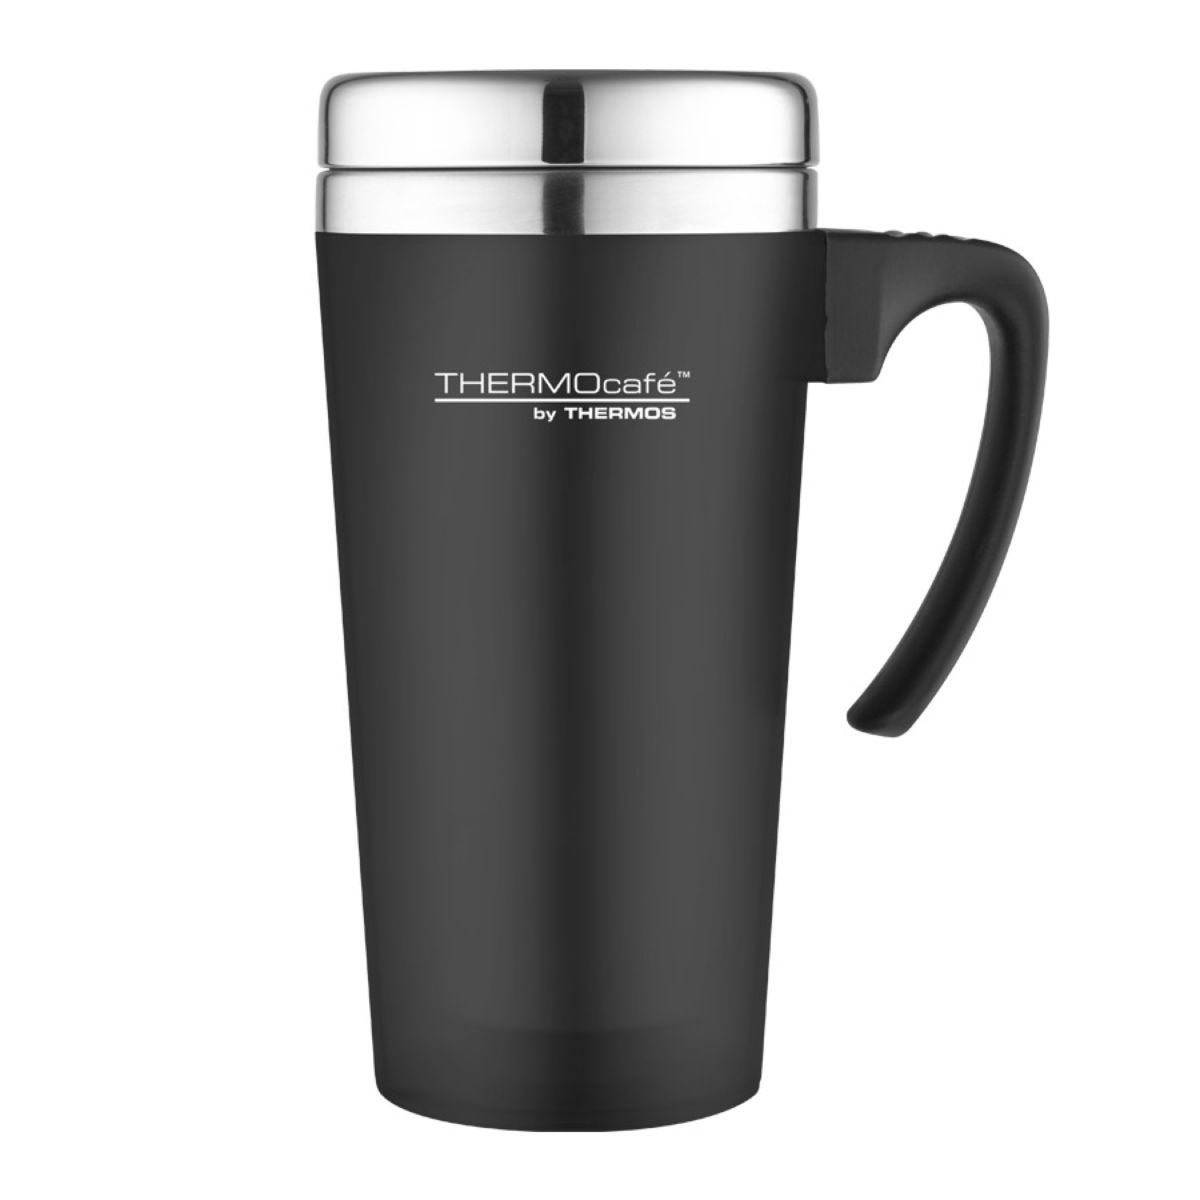 Thermos Thermocafe Zest 400ml Travel Mug Black Robert Dyas